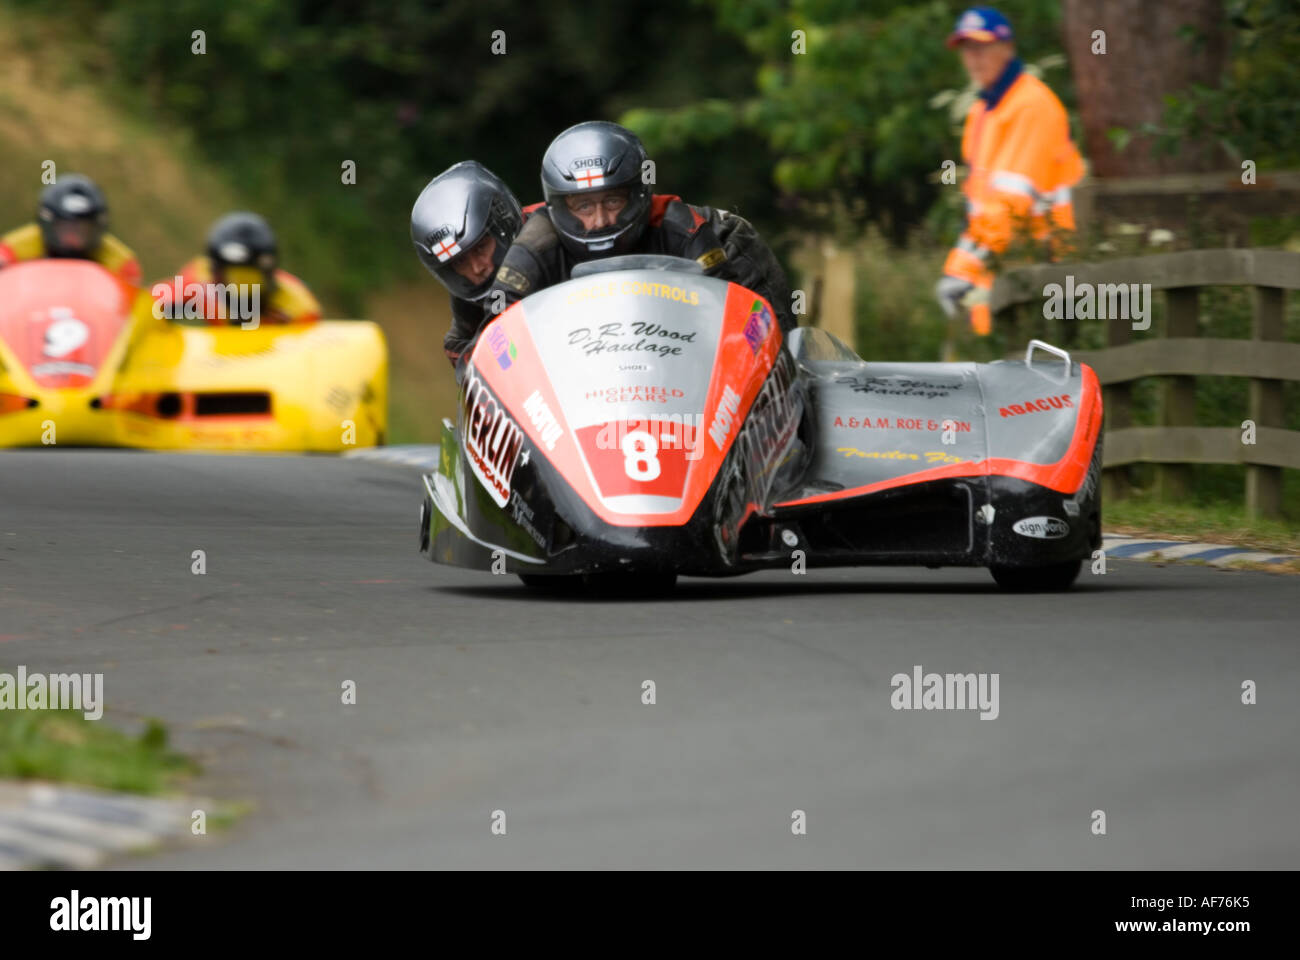 Motorcycle Sidecar Racing Stock Photos Tt2011 Sidecars Tony Thirkell Driver And Roy King In First Place Formula2